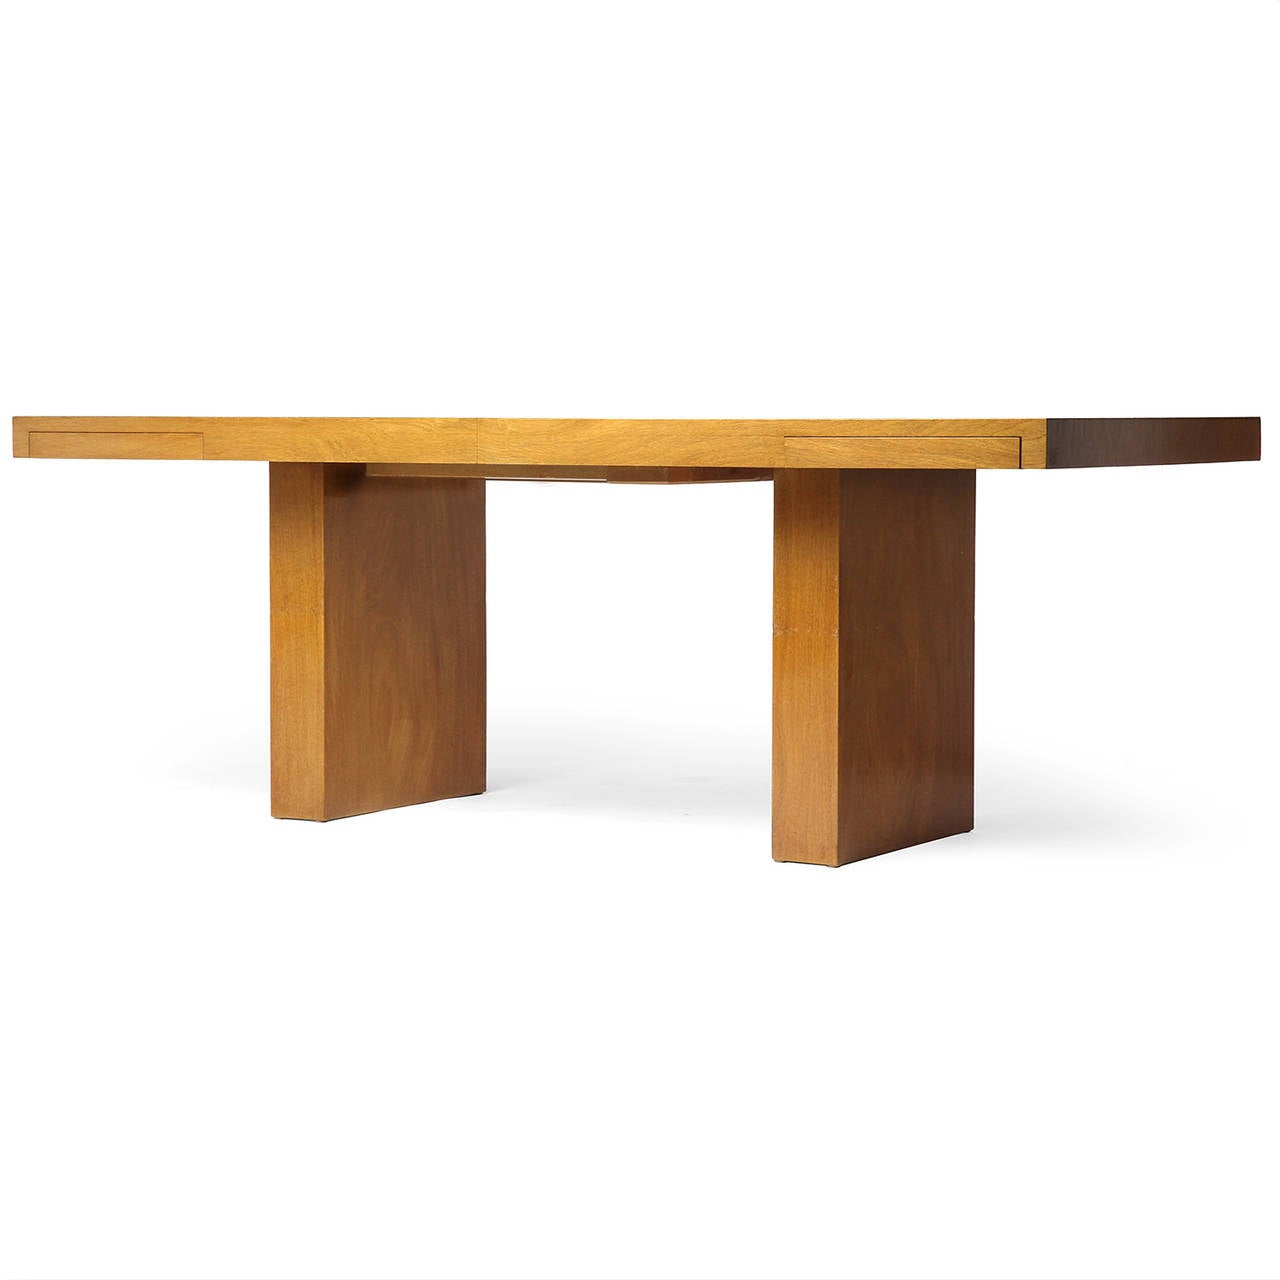 Minimalist Dining Table by Edward Wormley For Sale at 1stdibs : 6l from www.1stdibs.com size 1280 x 1280 jpeg 41kB